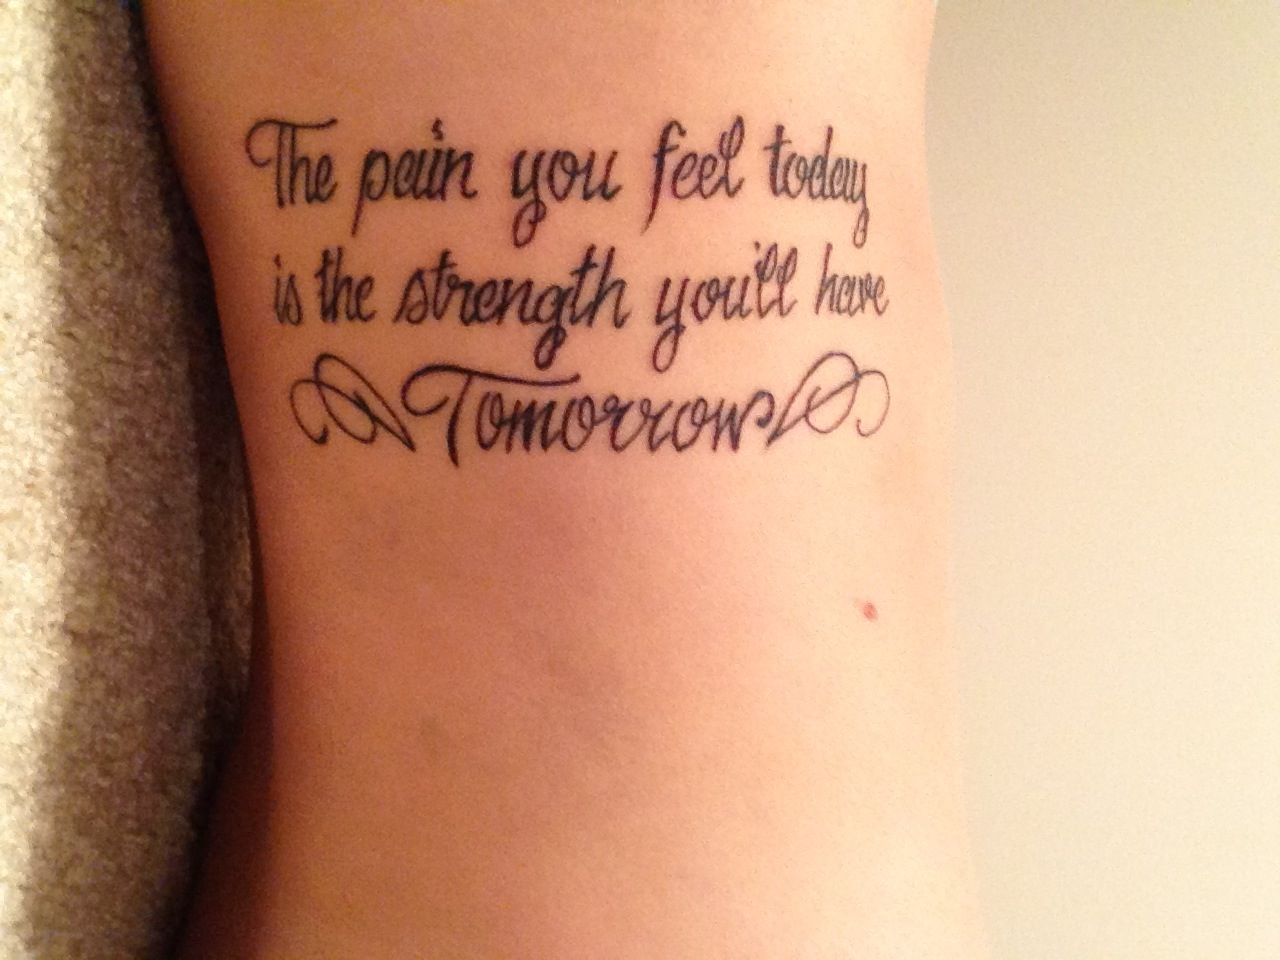 Tattoo Quotes About Strength The pain you have today is the strength you`ll have tomorrow  Tattoo Quotes About Strength